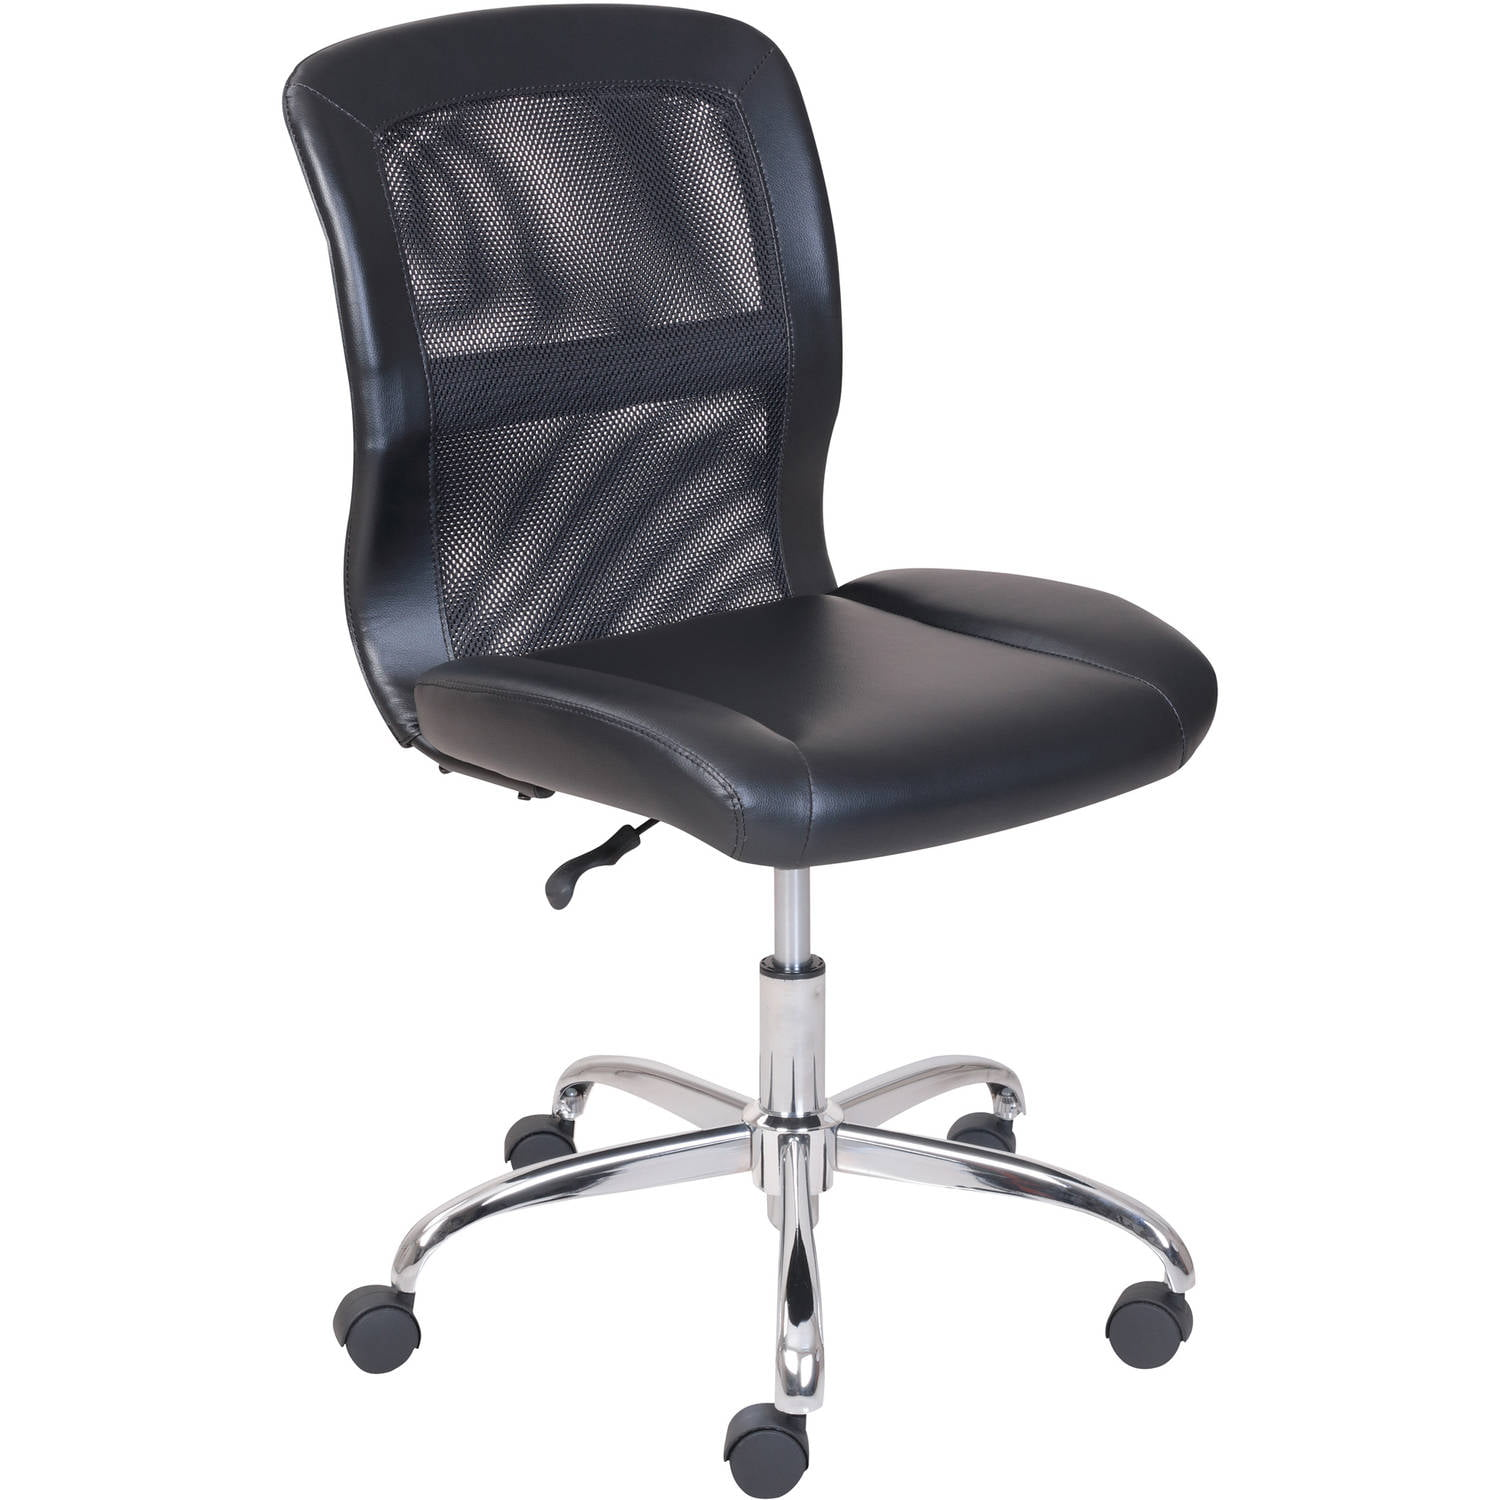 mainstays vinyl and mesh task chair, multiple colors - walmart